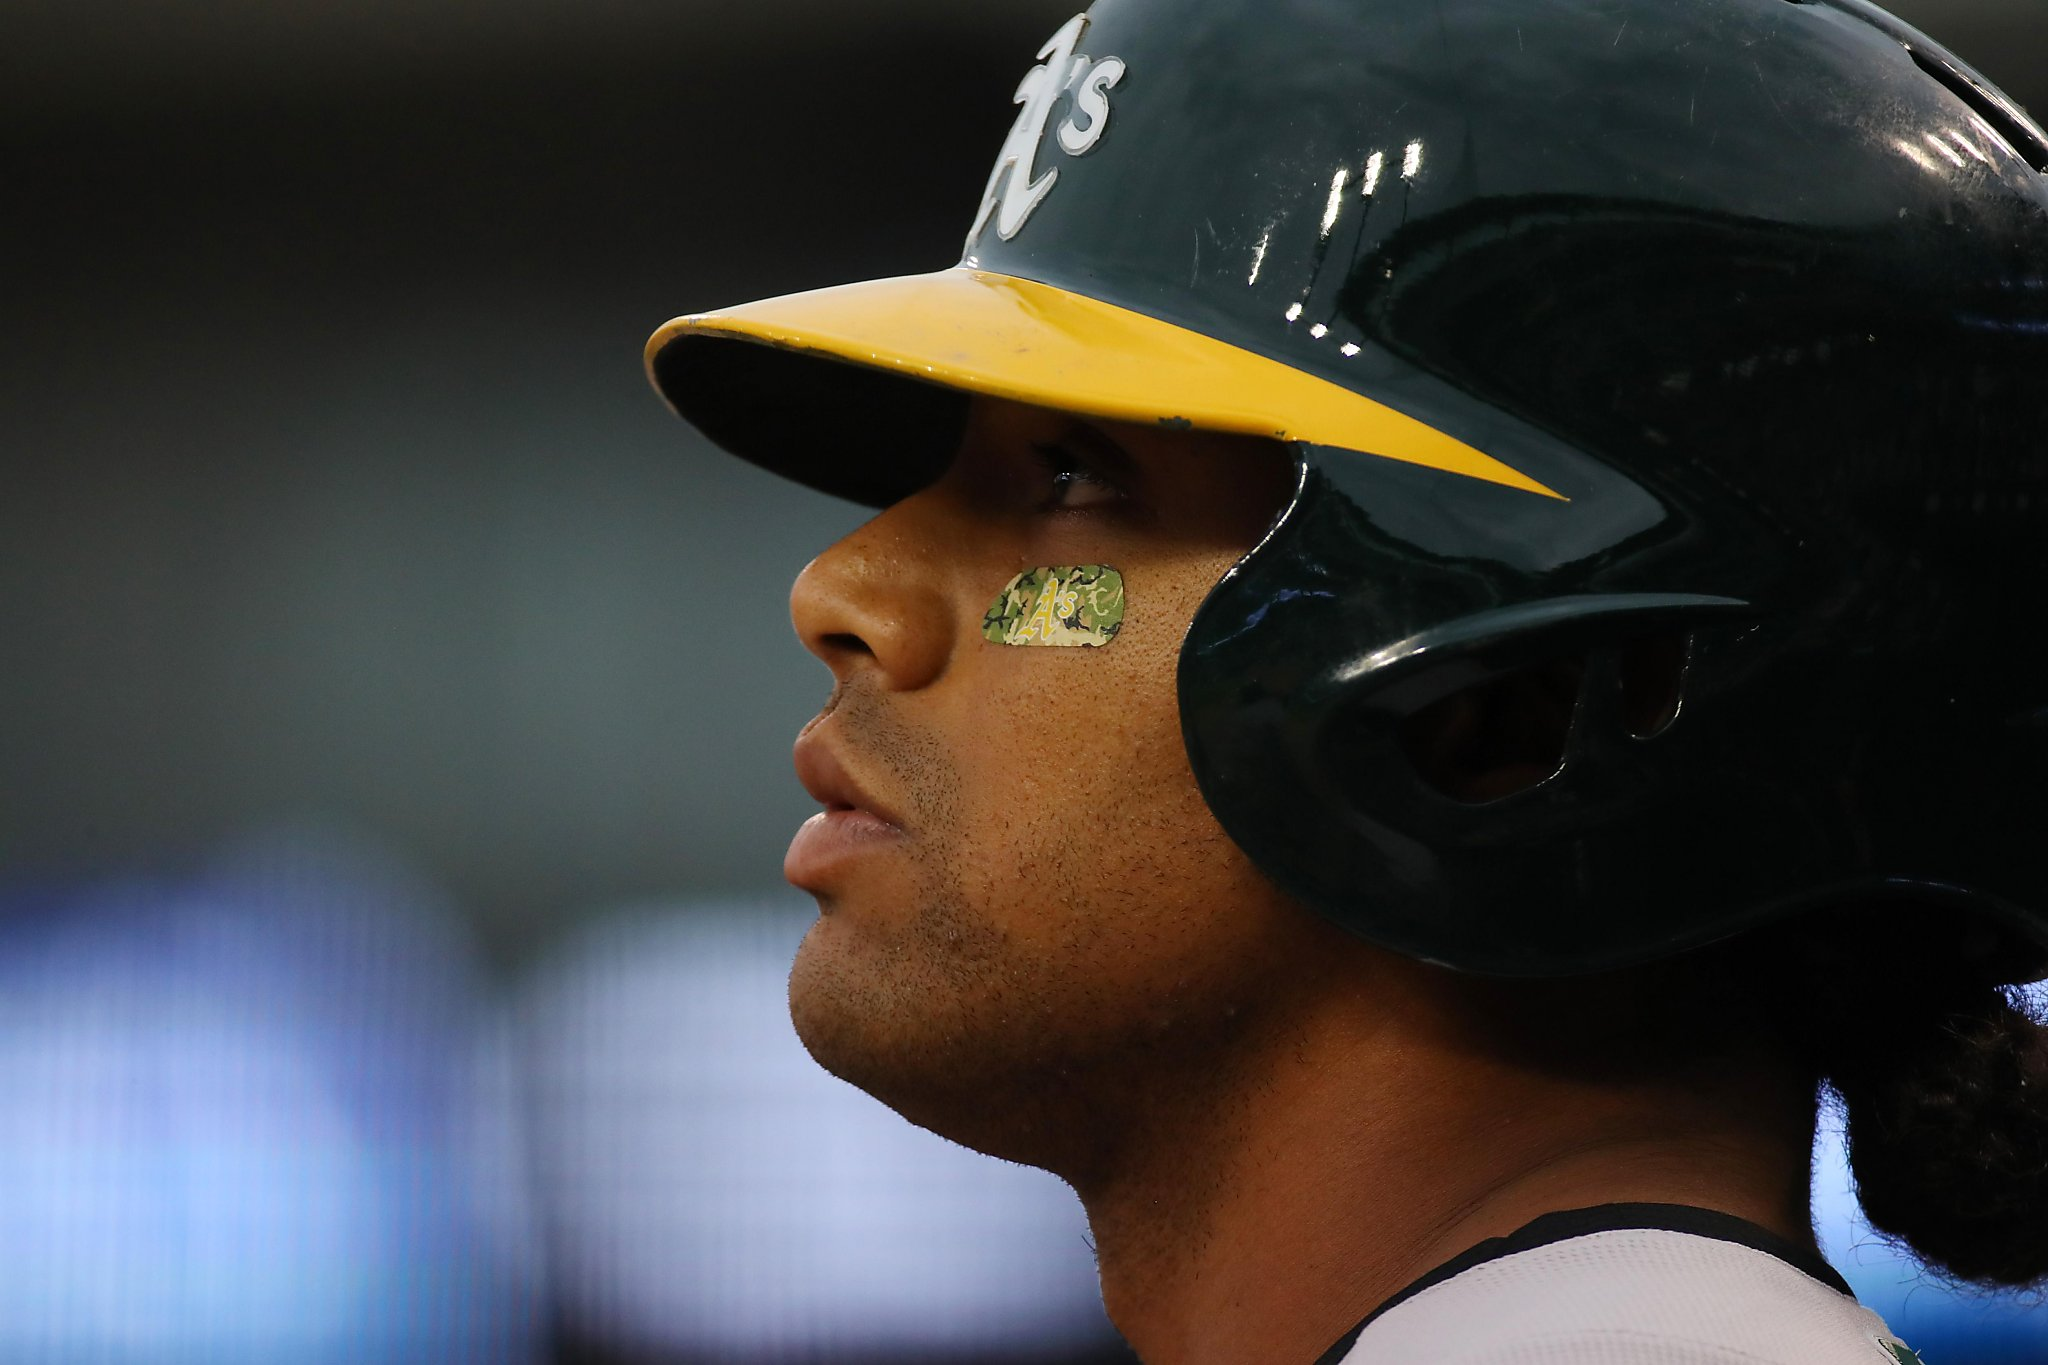 A's Khris Davis scratched with hip soreness